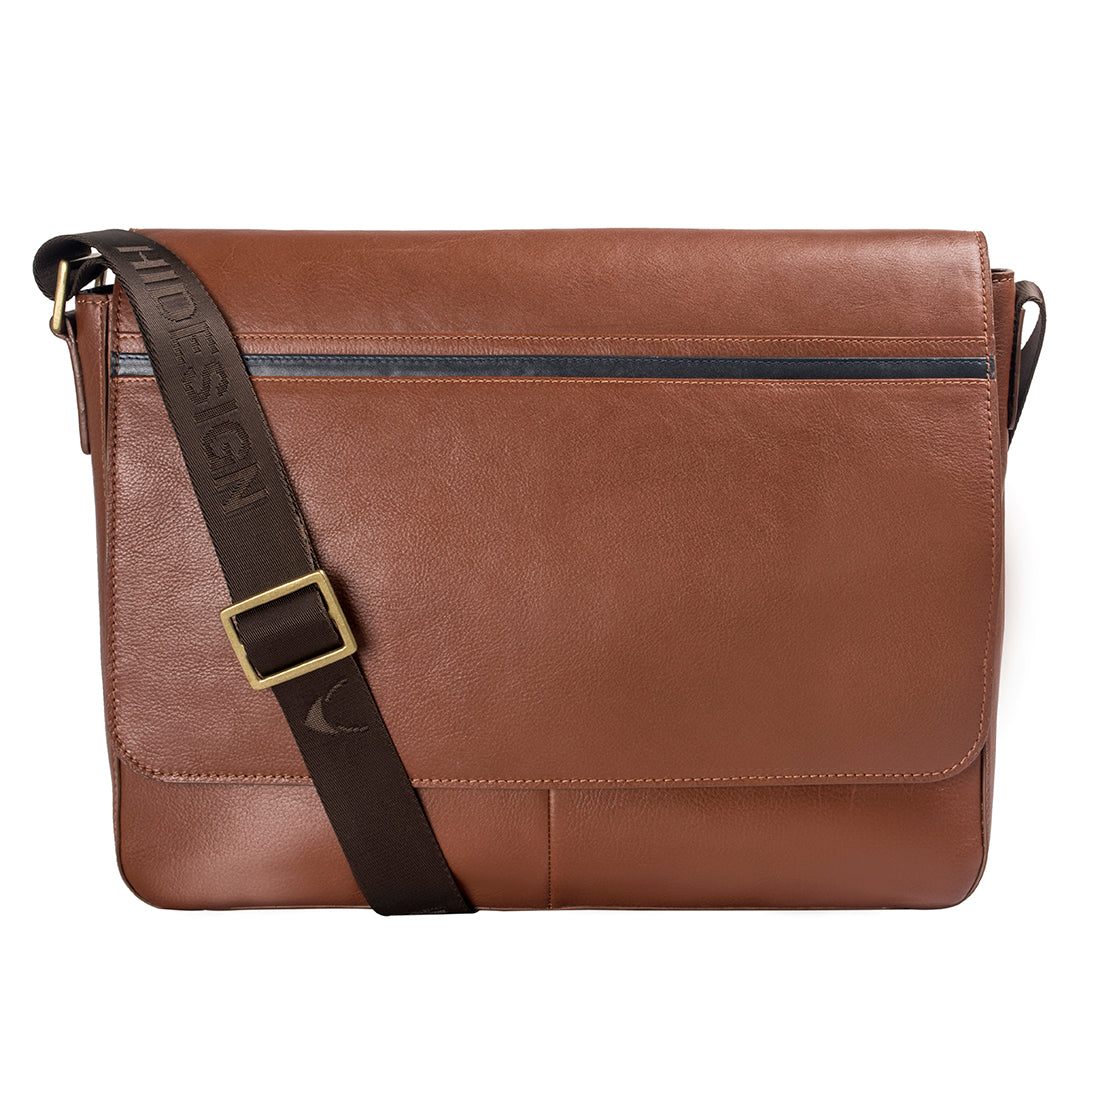 SIGMUND 01 MESSENGER BAG